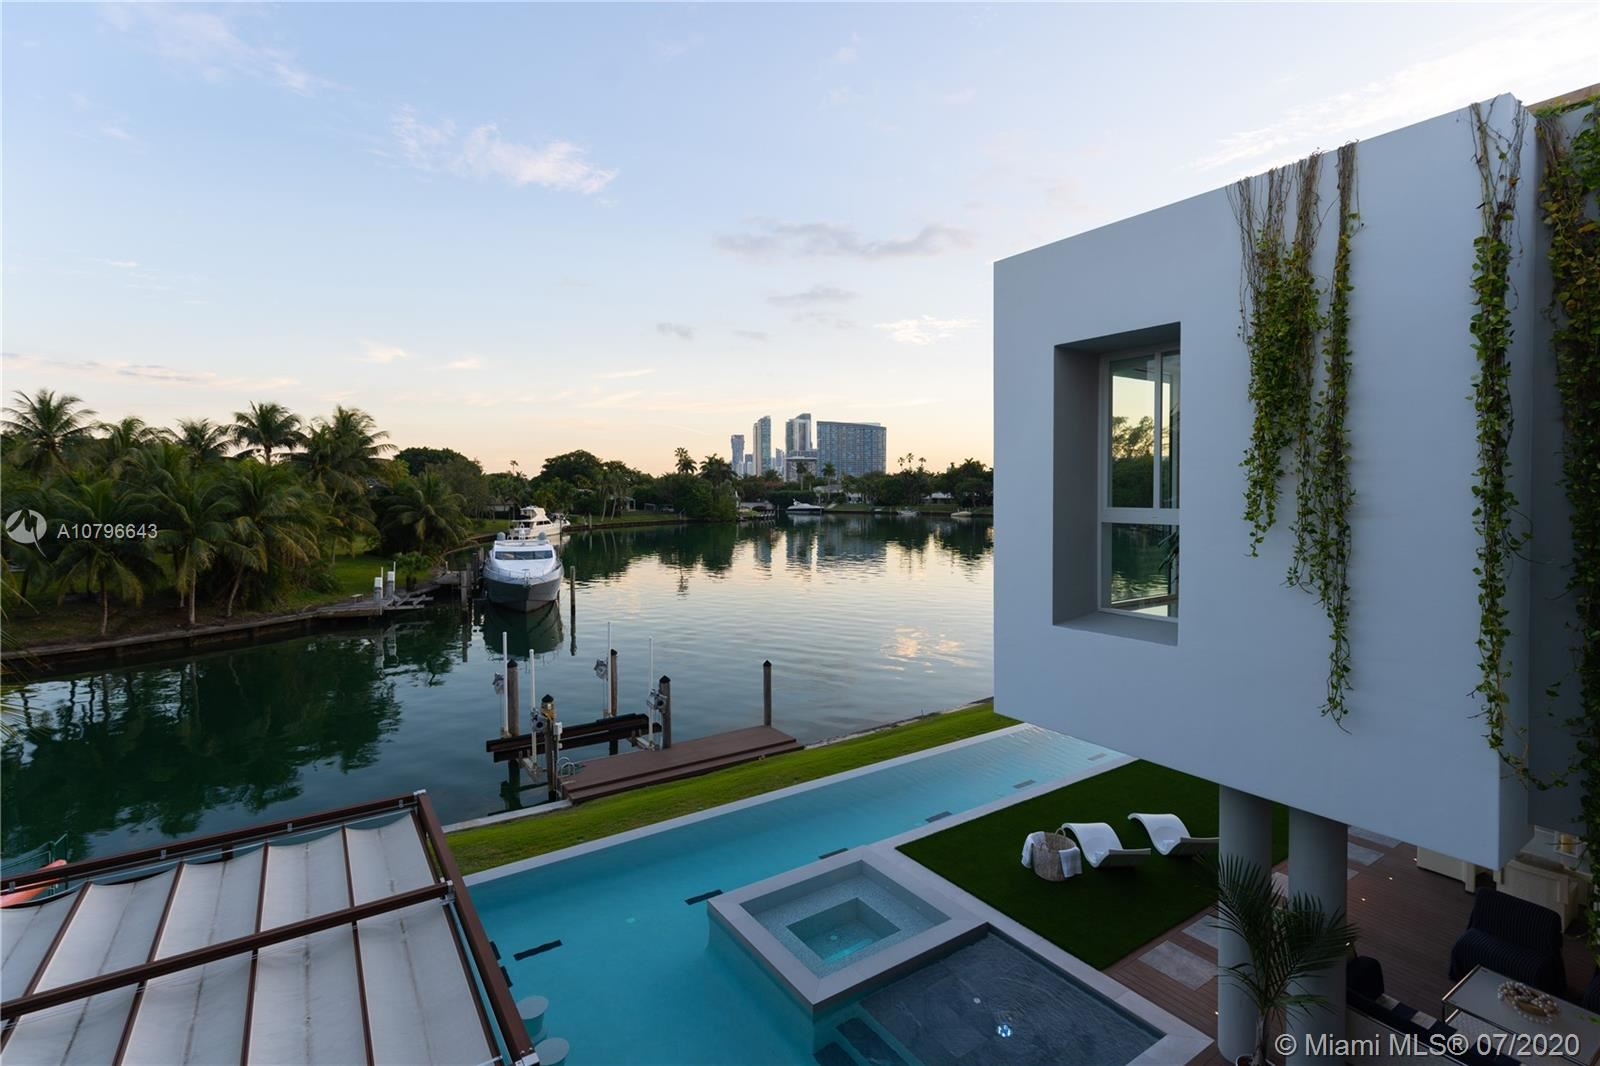 Photo 25 of Listing MLS a10796643 in 4731 Lake Rd Miami FL 33137